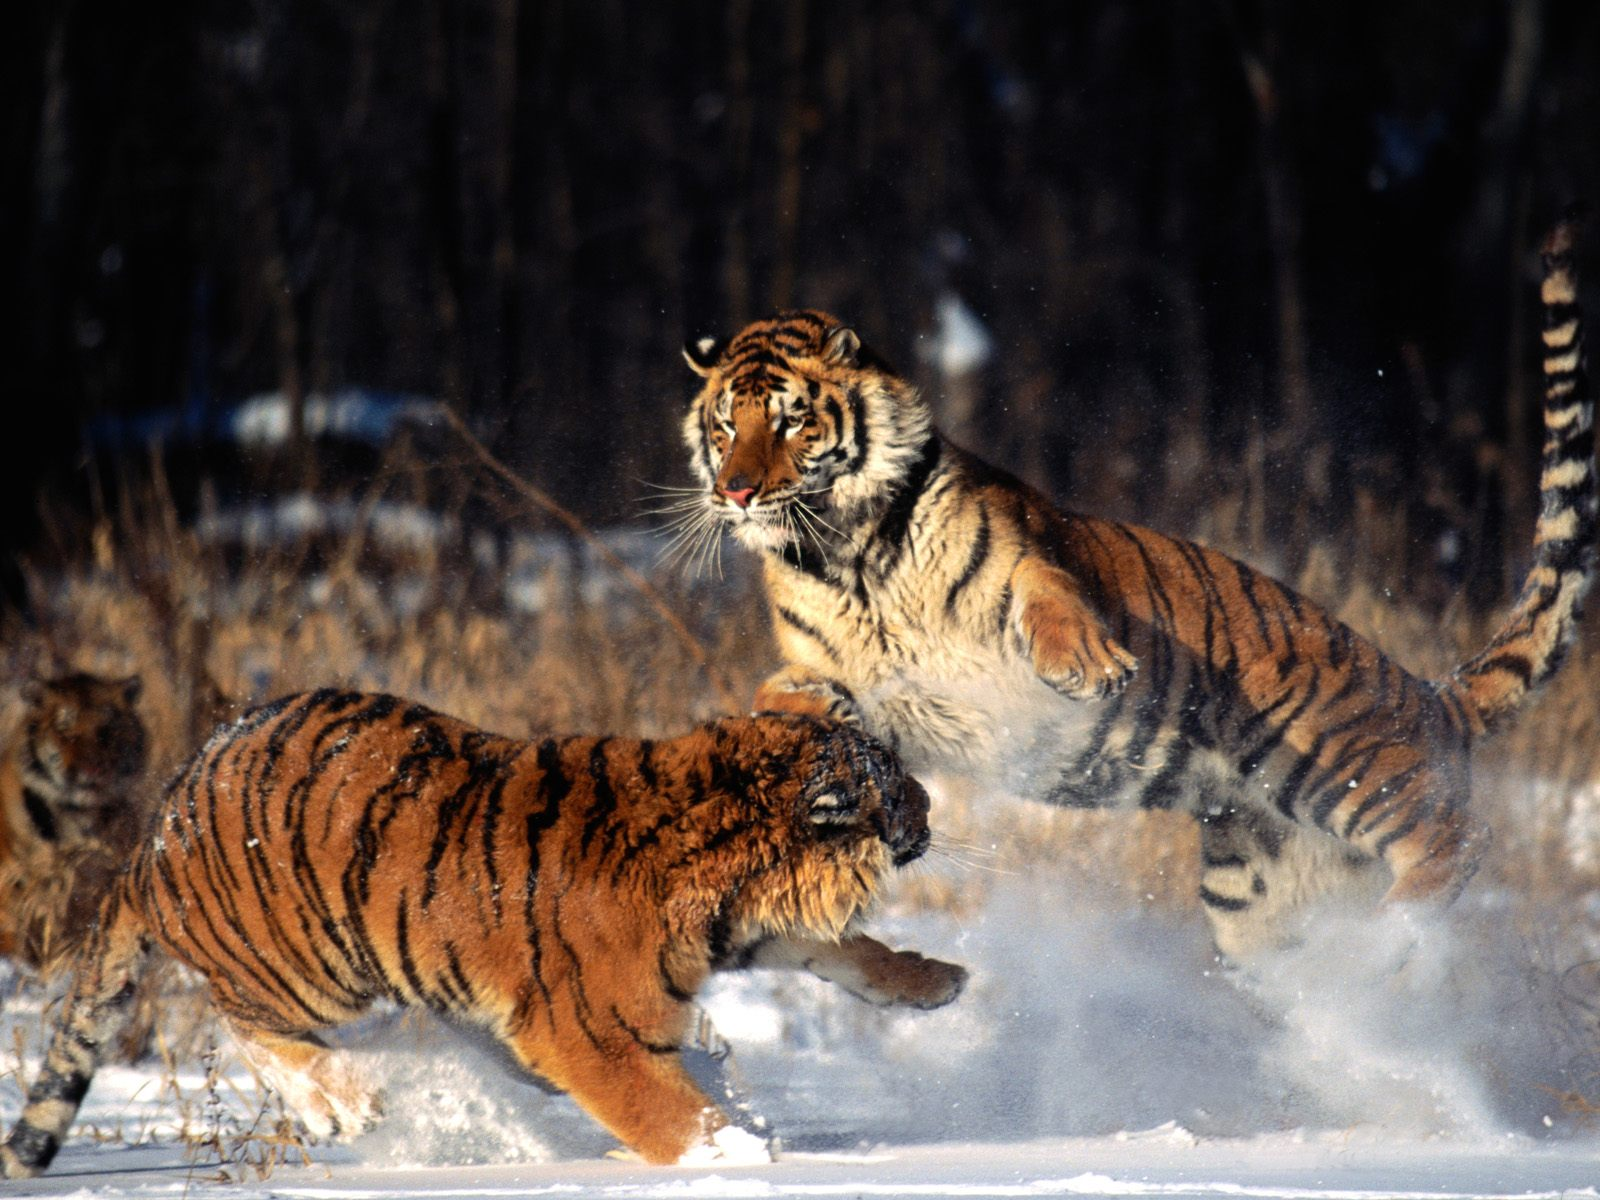 http://1.bp.blogspot.com/-NXlyuSVkzD4/TgnYwto7H7I/AAAAAAAAI1k/aJIaxV4MsU0/s1600/The-best-top-desktop-tiger-wallpapers-hd-tiger-wallpaper-29.jpg